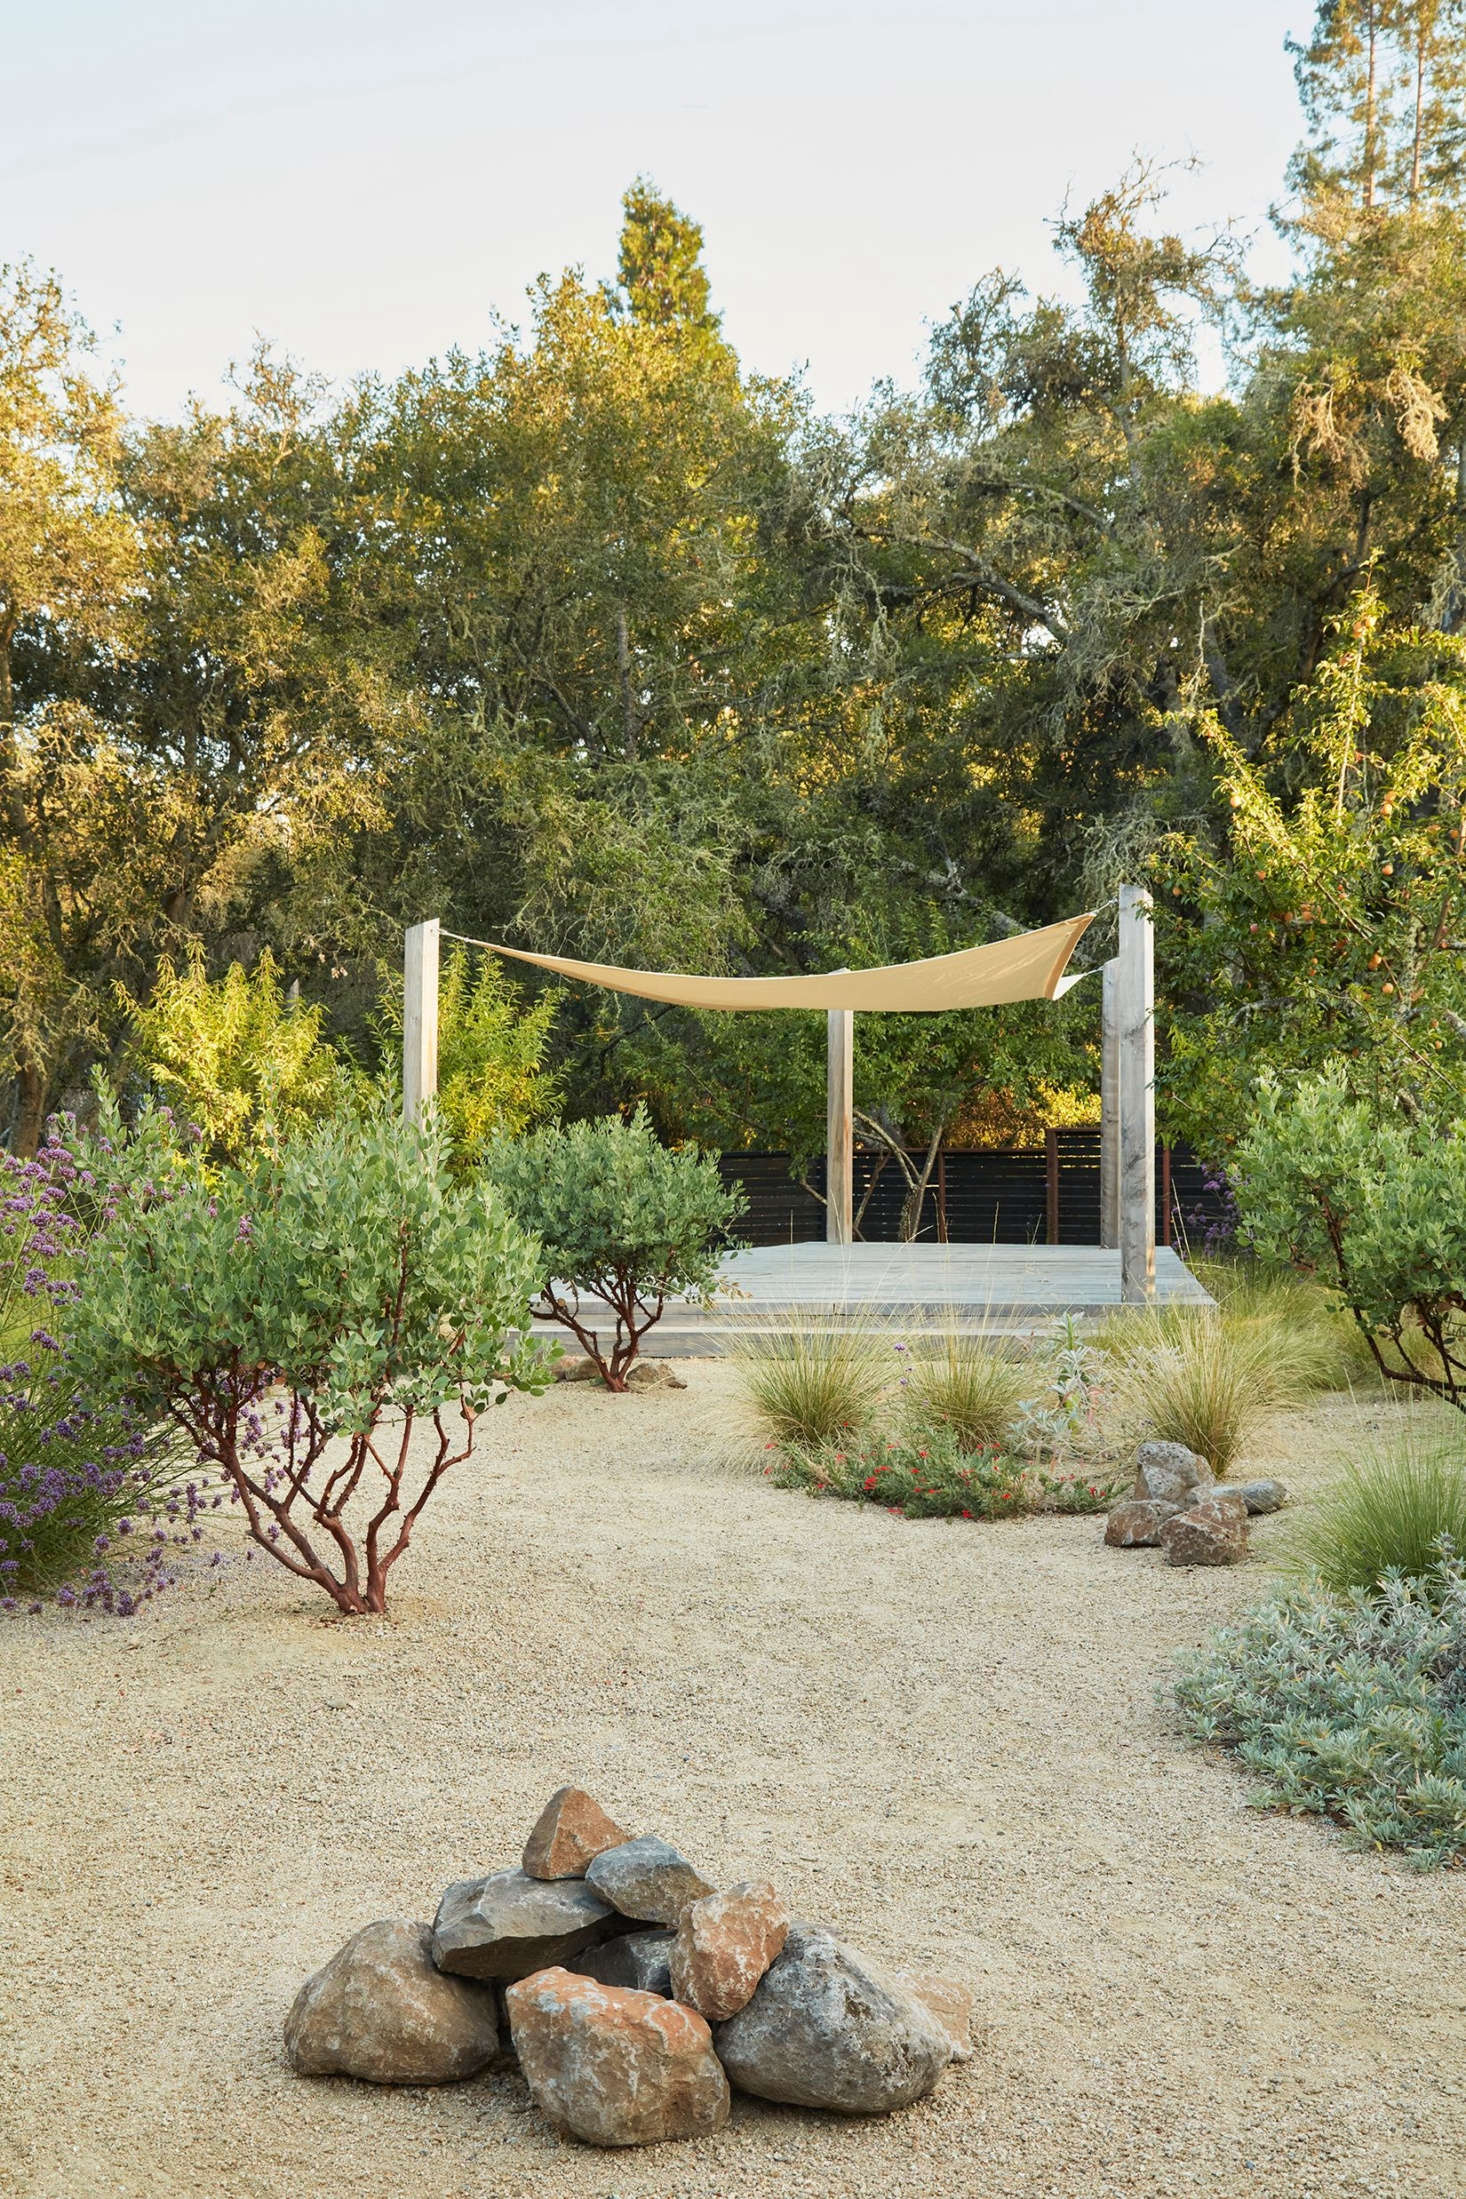 """One of the only challenges that Story cited with this project was with the shade shown above. """"We tried using nursery shade cloth as an alternative to the typical shade sail but it didn't hold up, so we had to pivot on that experiment.&#8"""